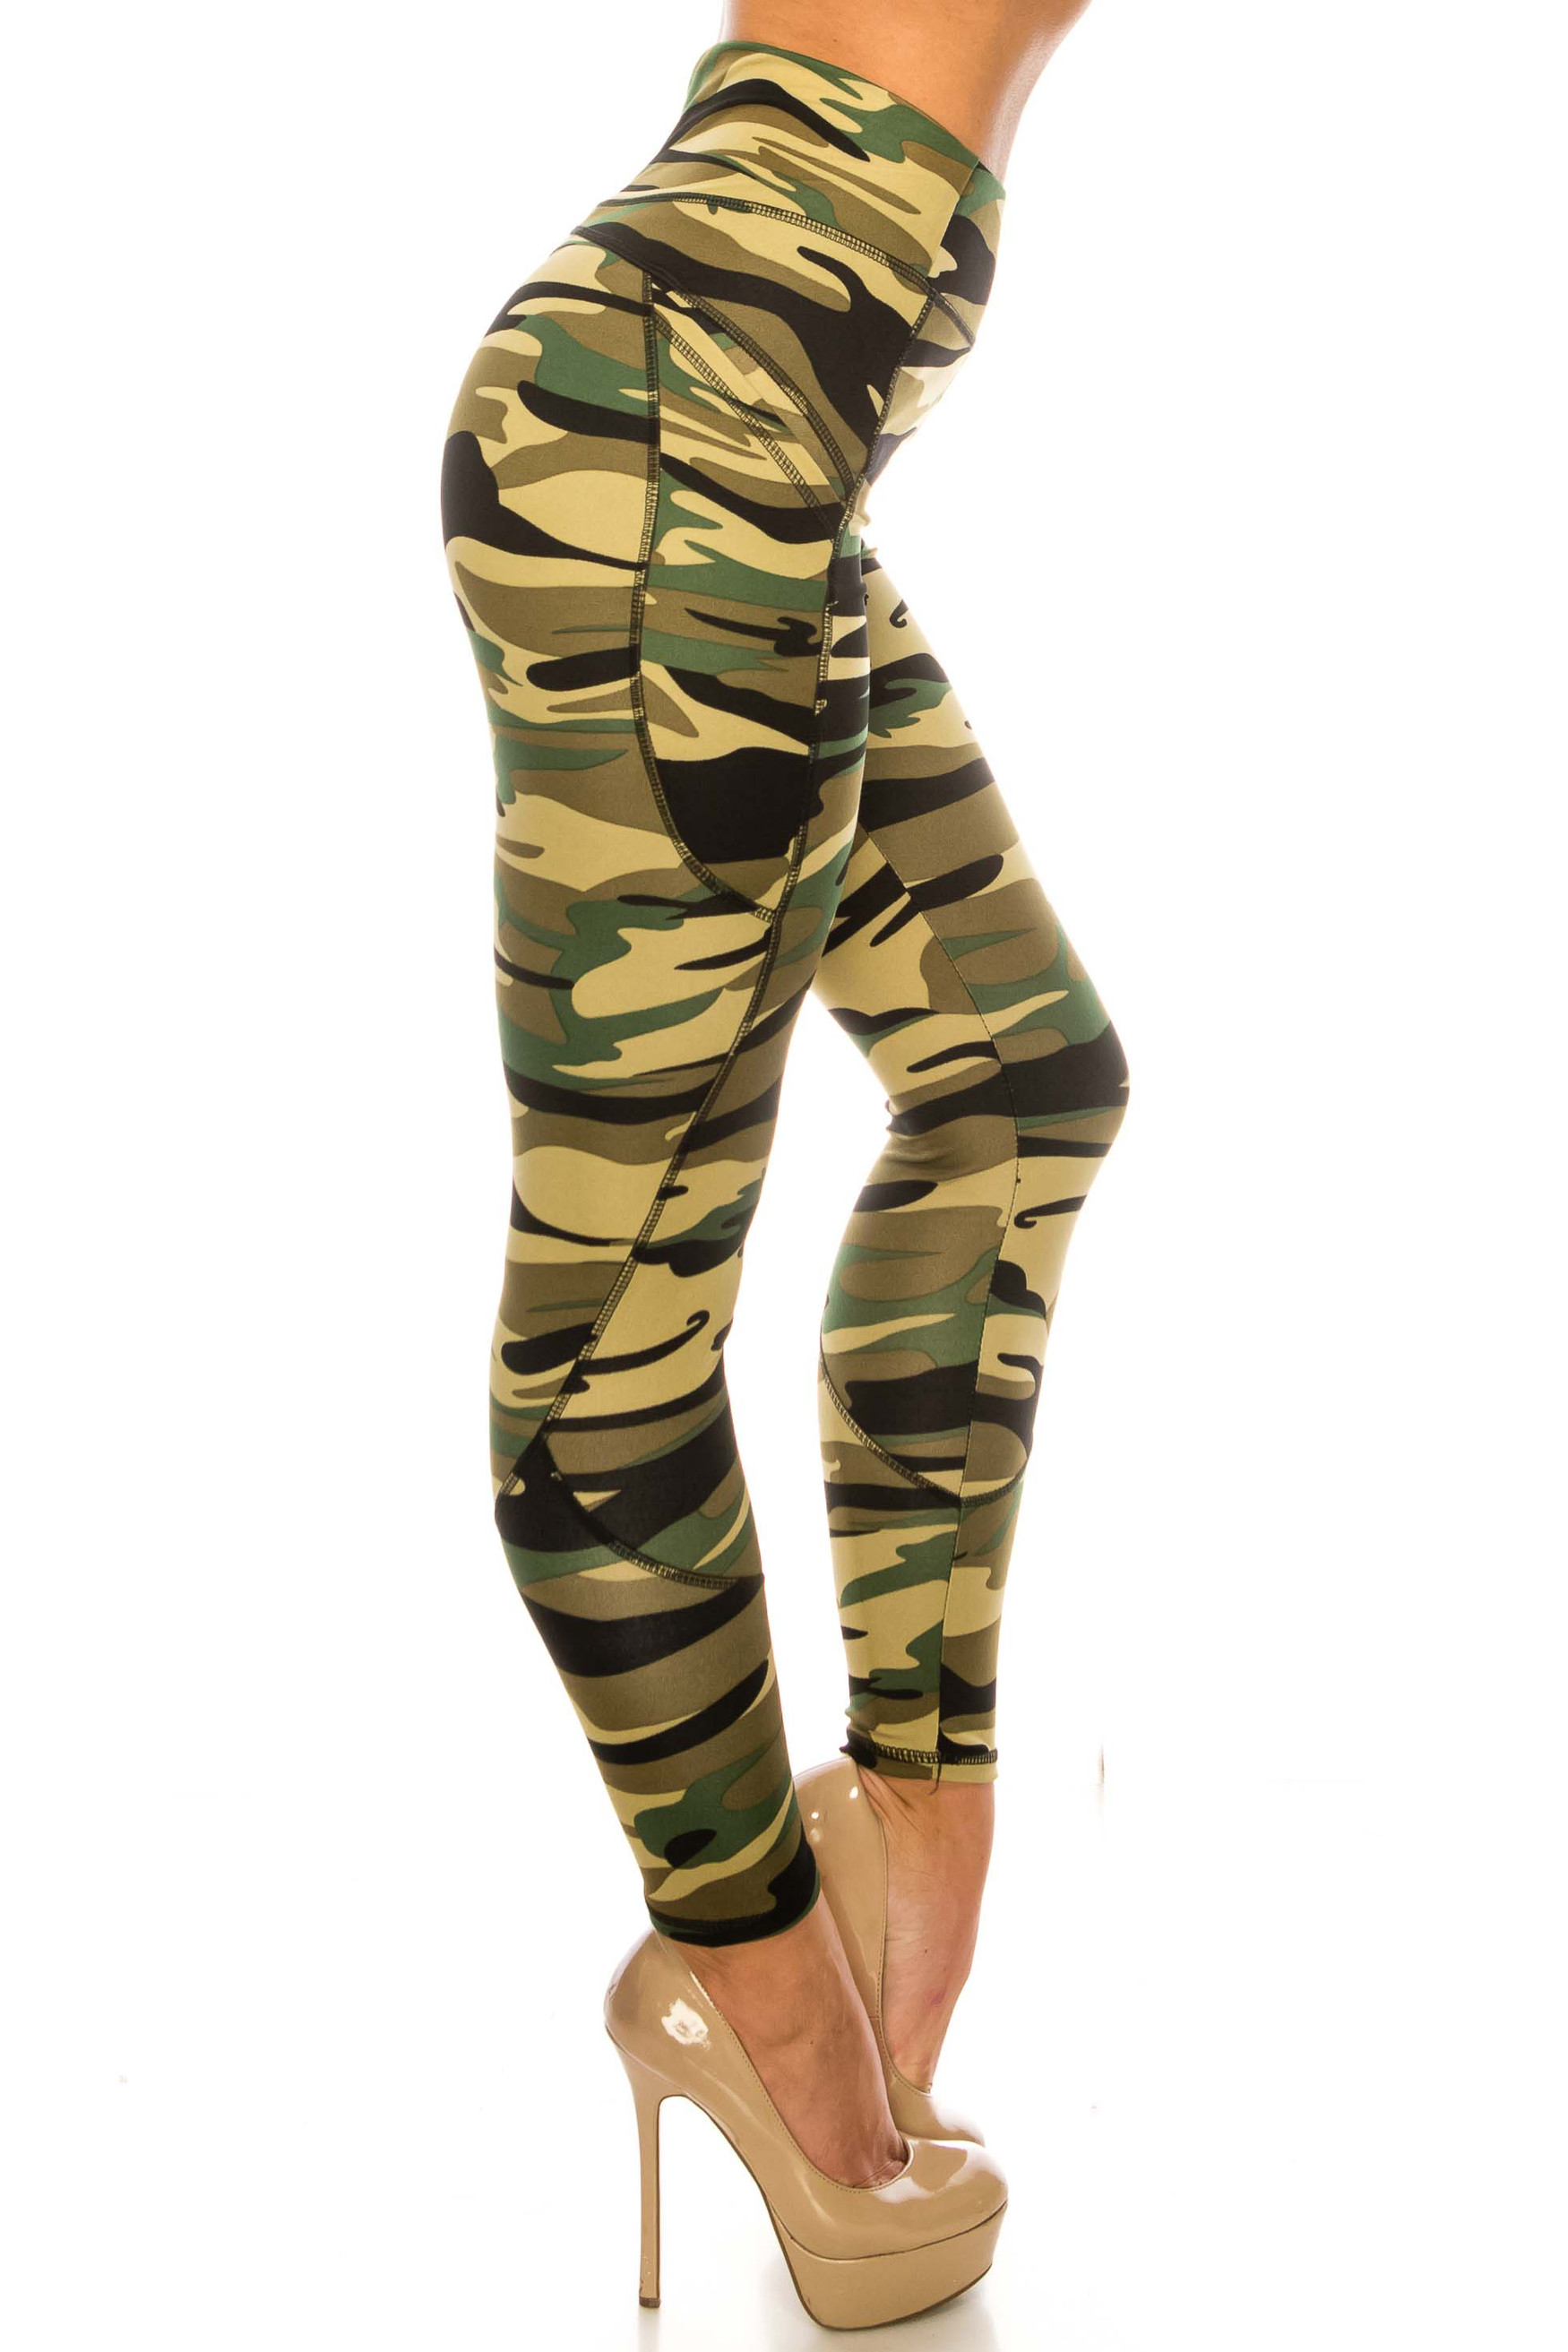 Green Camouflage Contour Seam High Waisted Sport Leggings with Pockets